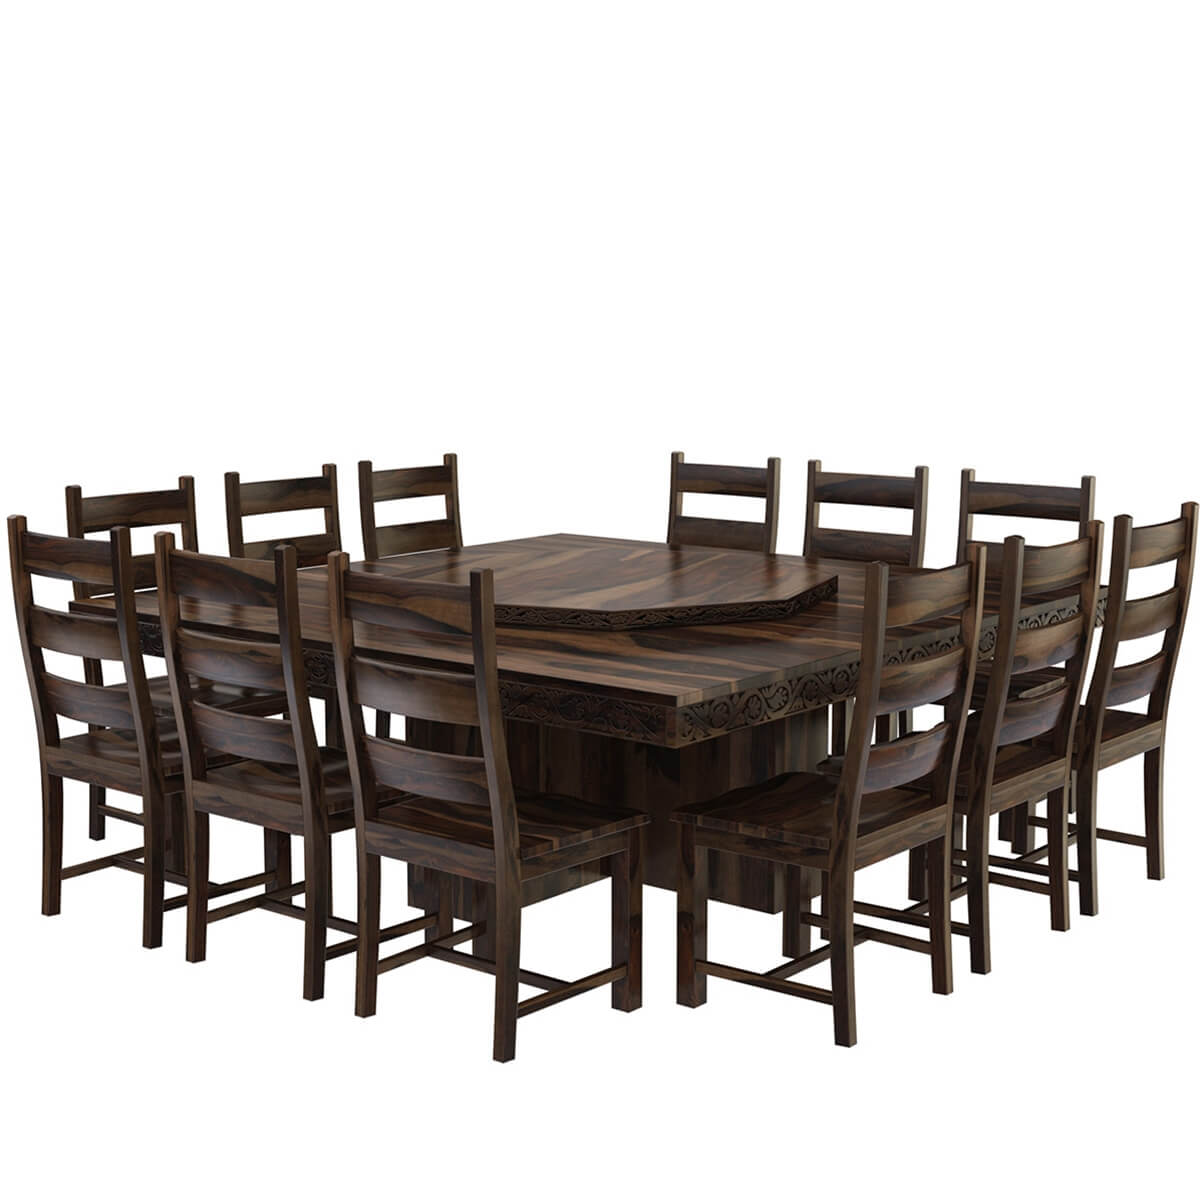 Modern Pioneer Solid Wood Lazy Susan Pedestal Dining Table  : 73793 from www.sierralivingconcepts.com size 1200 x 1200 jpeg 94kB